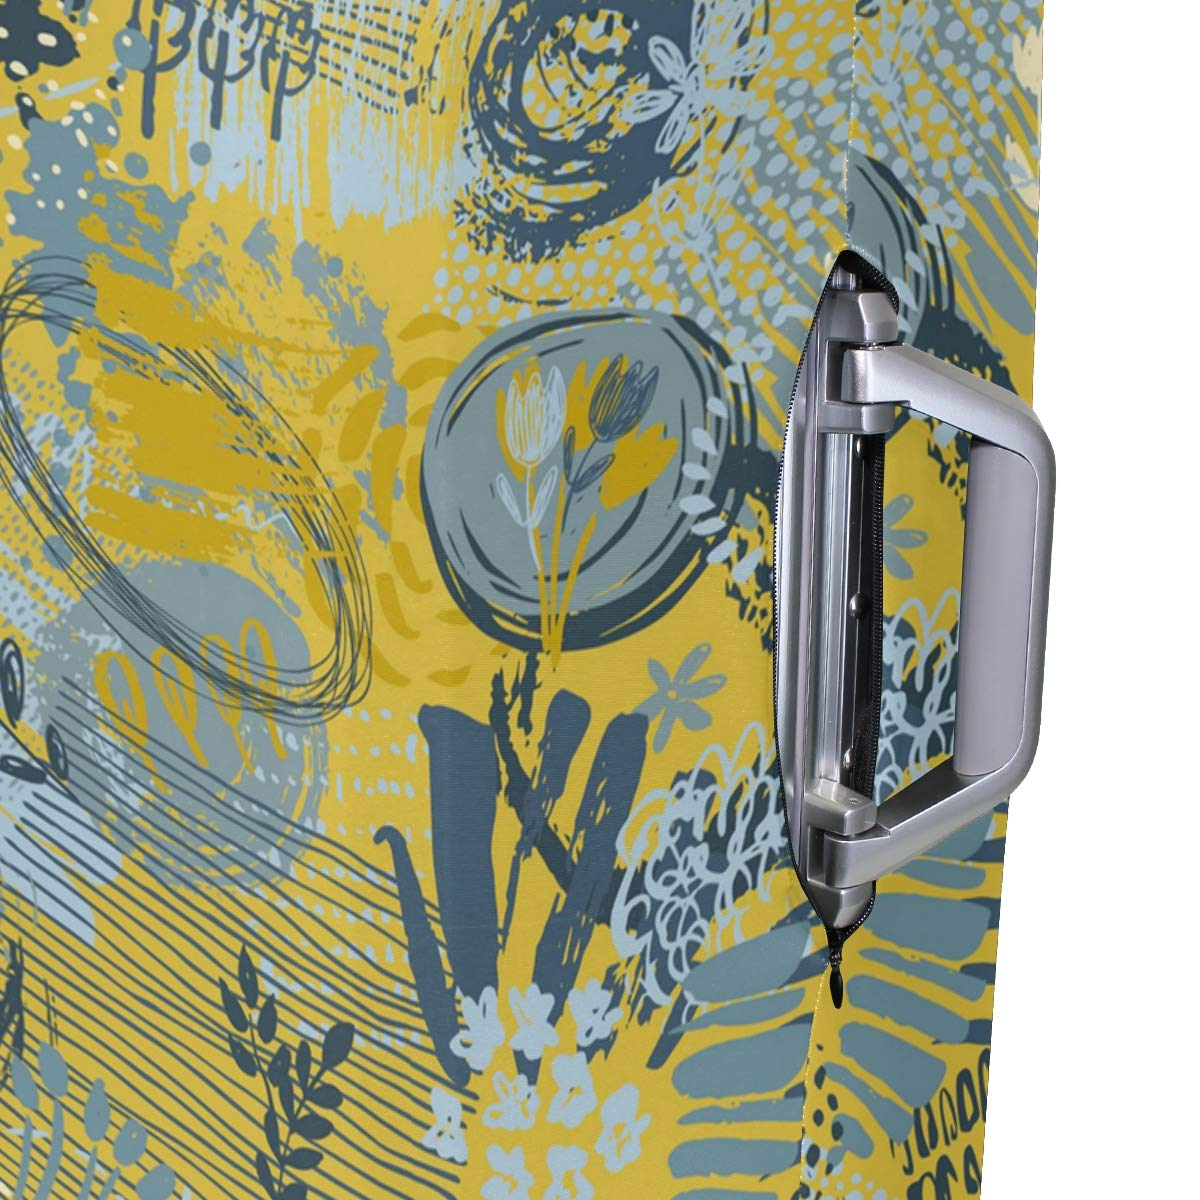 Hand Drawn Abstract Lavender Traveler Lightweight Rotating Luggage Protector Case Can Carry With You Can Expand Travel Bag Trolley Rolling Luggage Protector Case